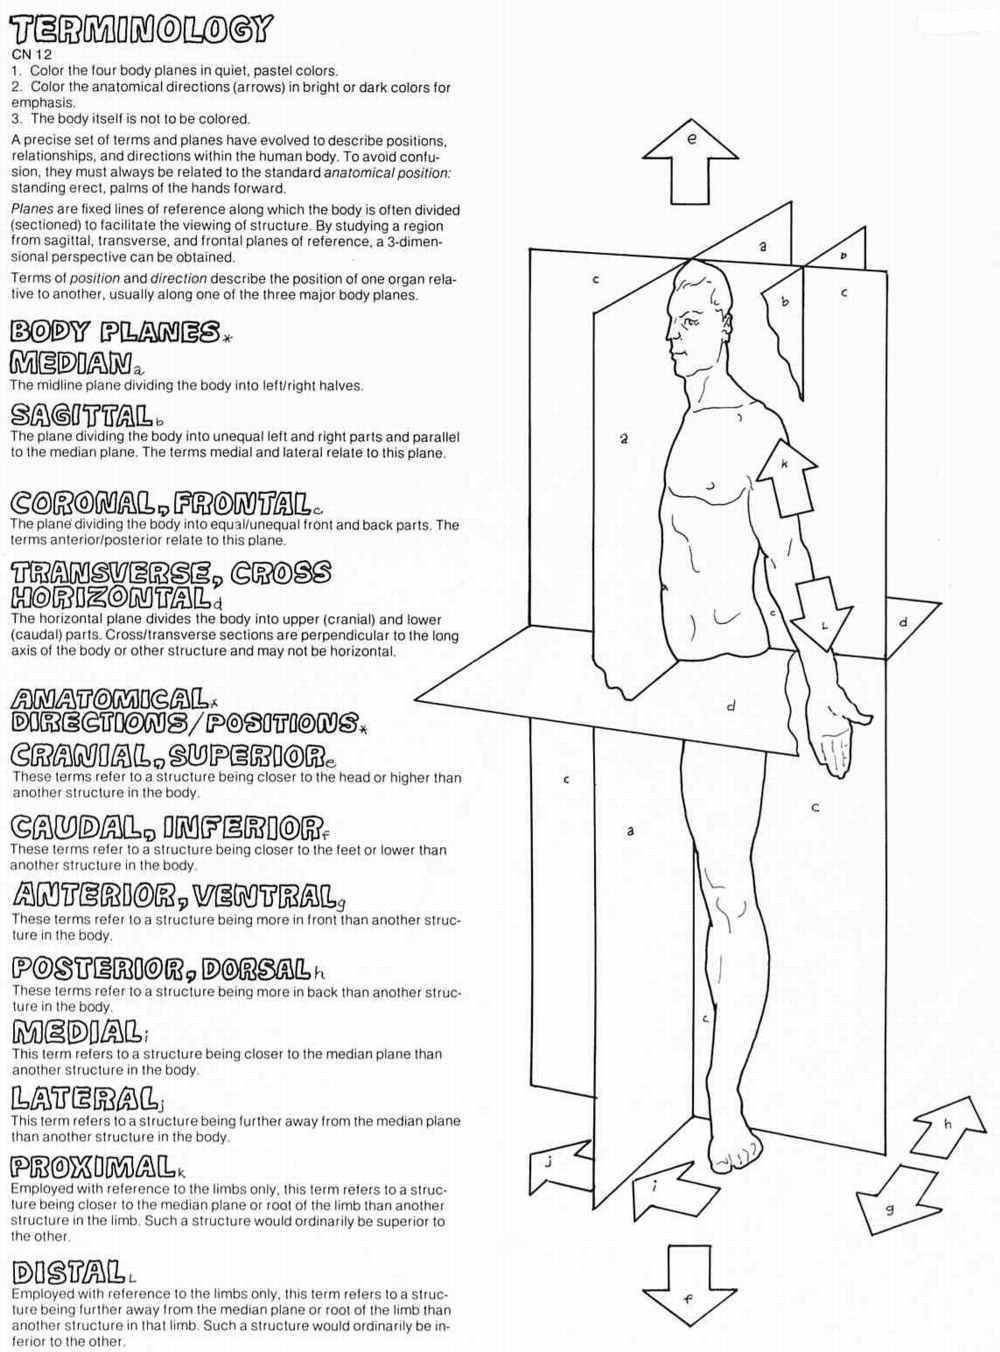 Anatomical Directional Terms of the Body | health | Pinterest ...